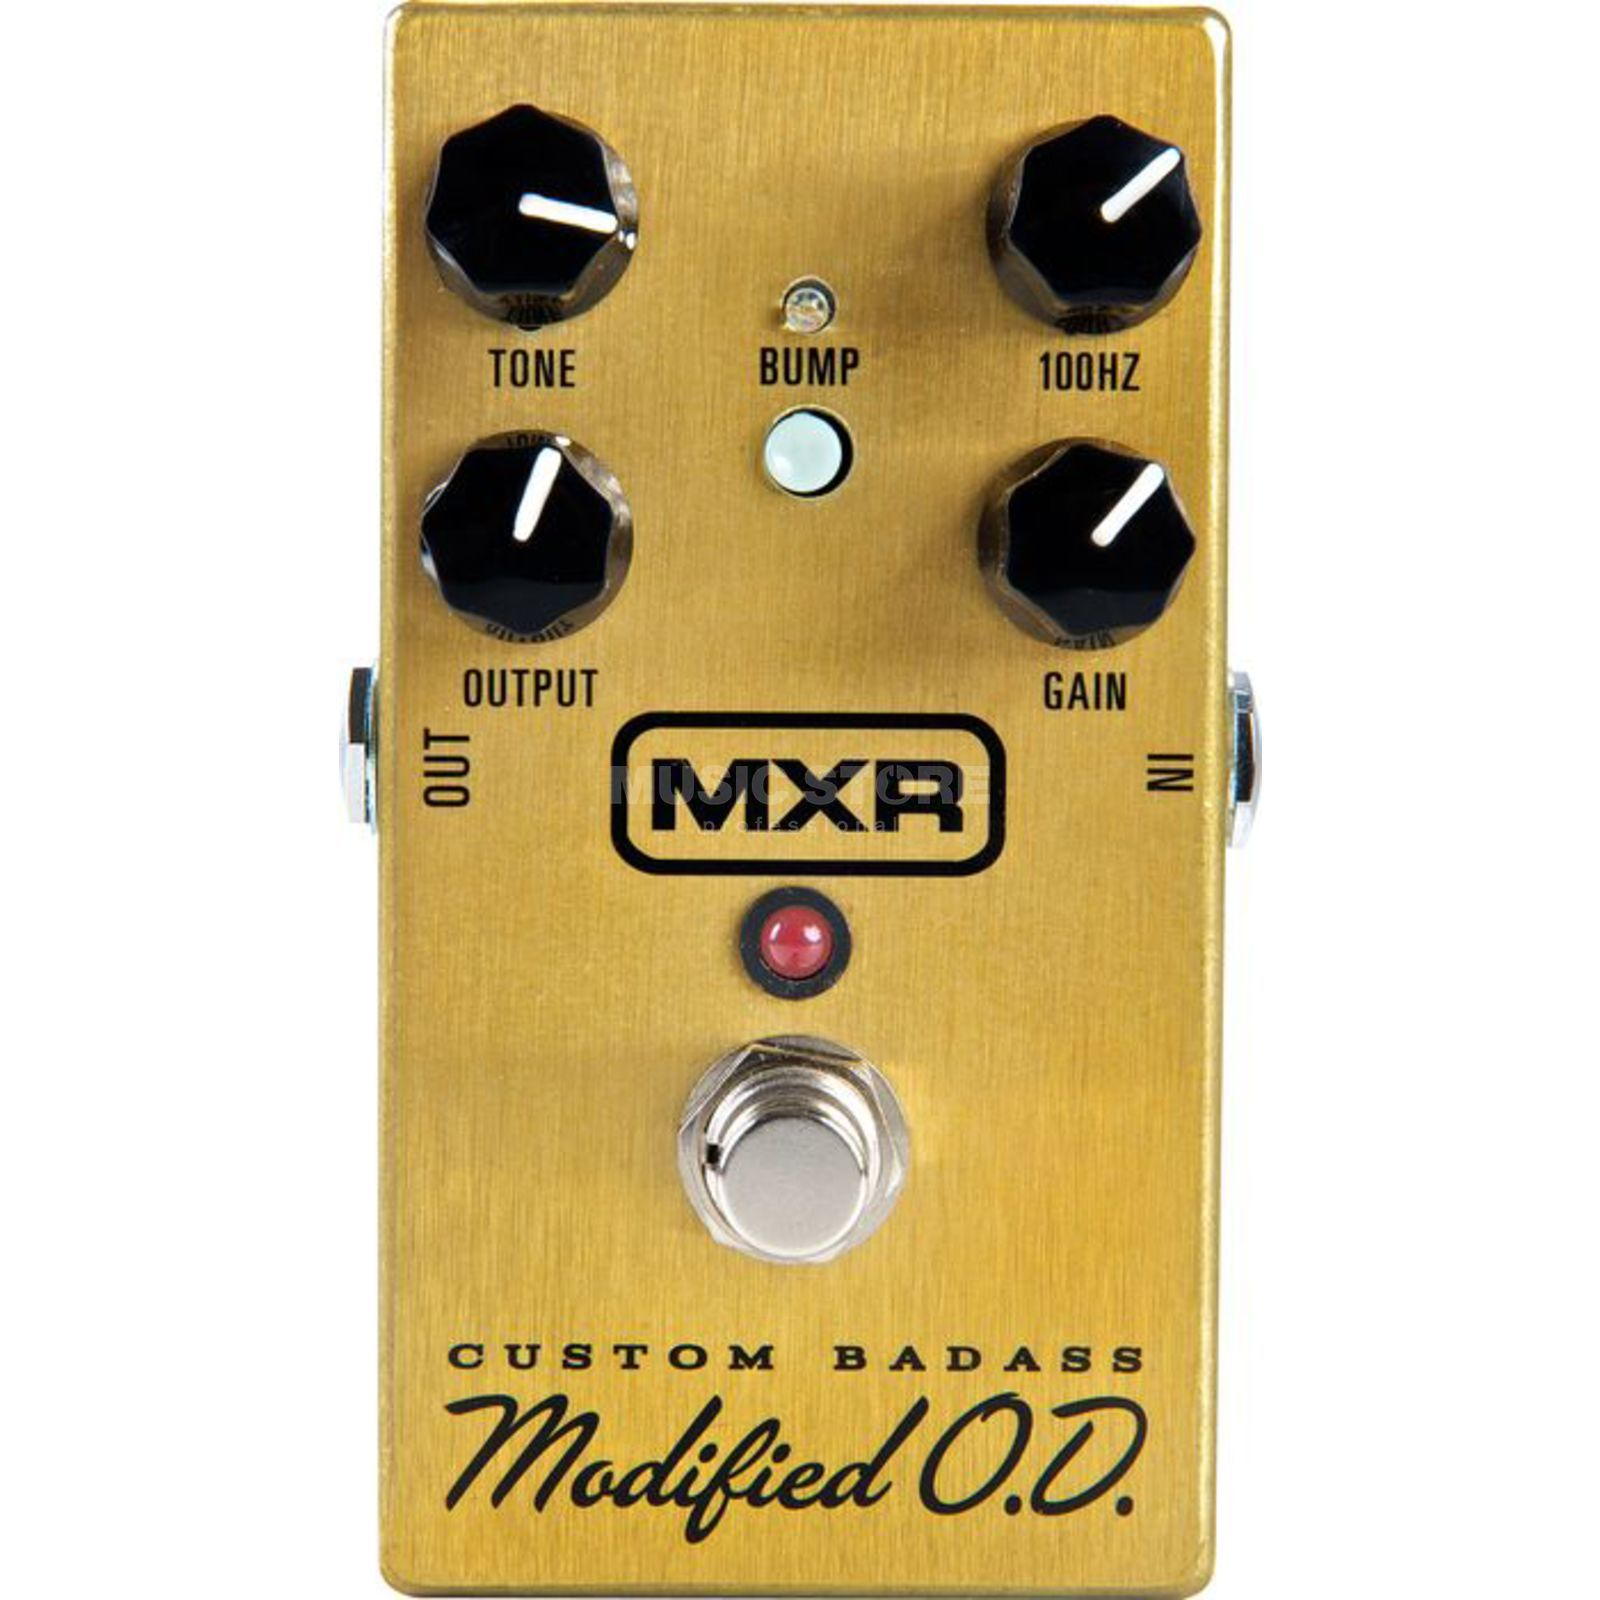 MXR Custom Badass Modified O.D. Gu itar Effects Pedal   Produktbillede